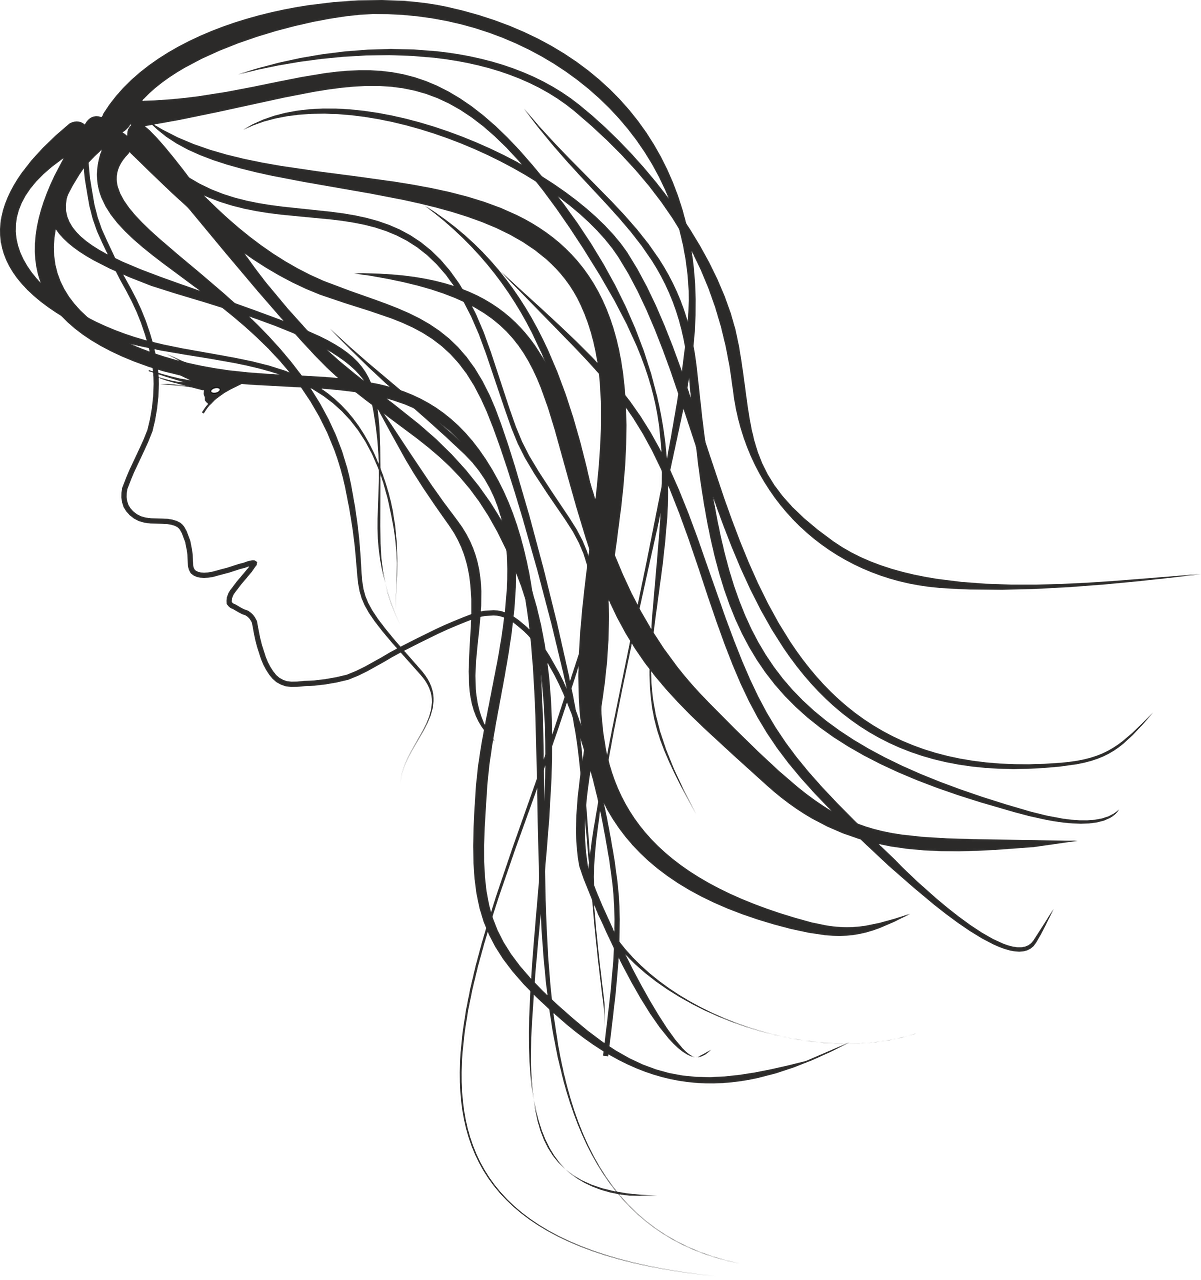 Woman Women Sketch Free Vector Graphic On Pixabay